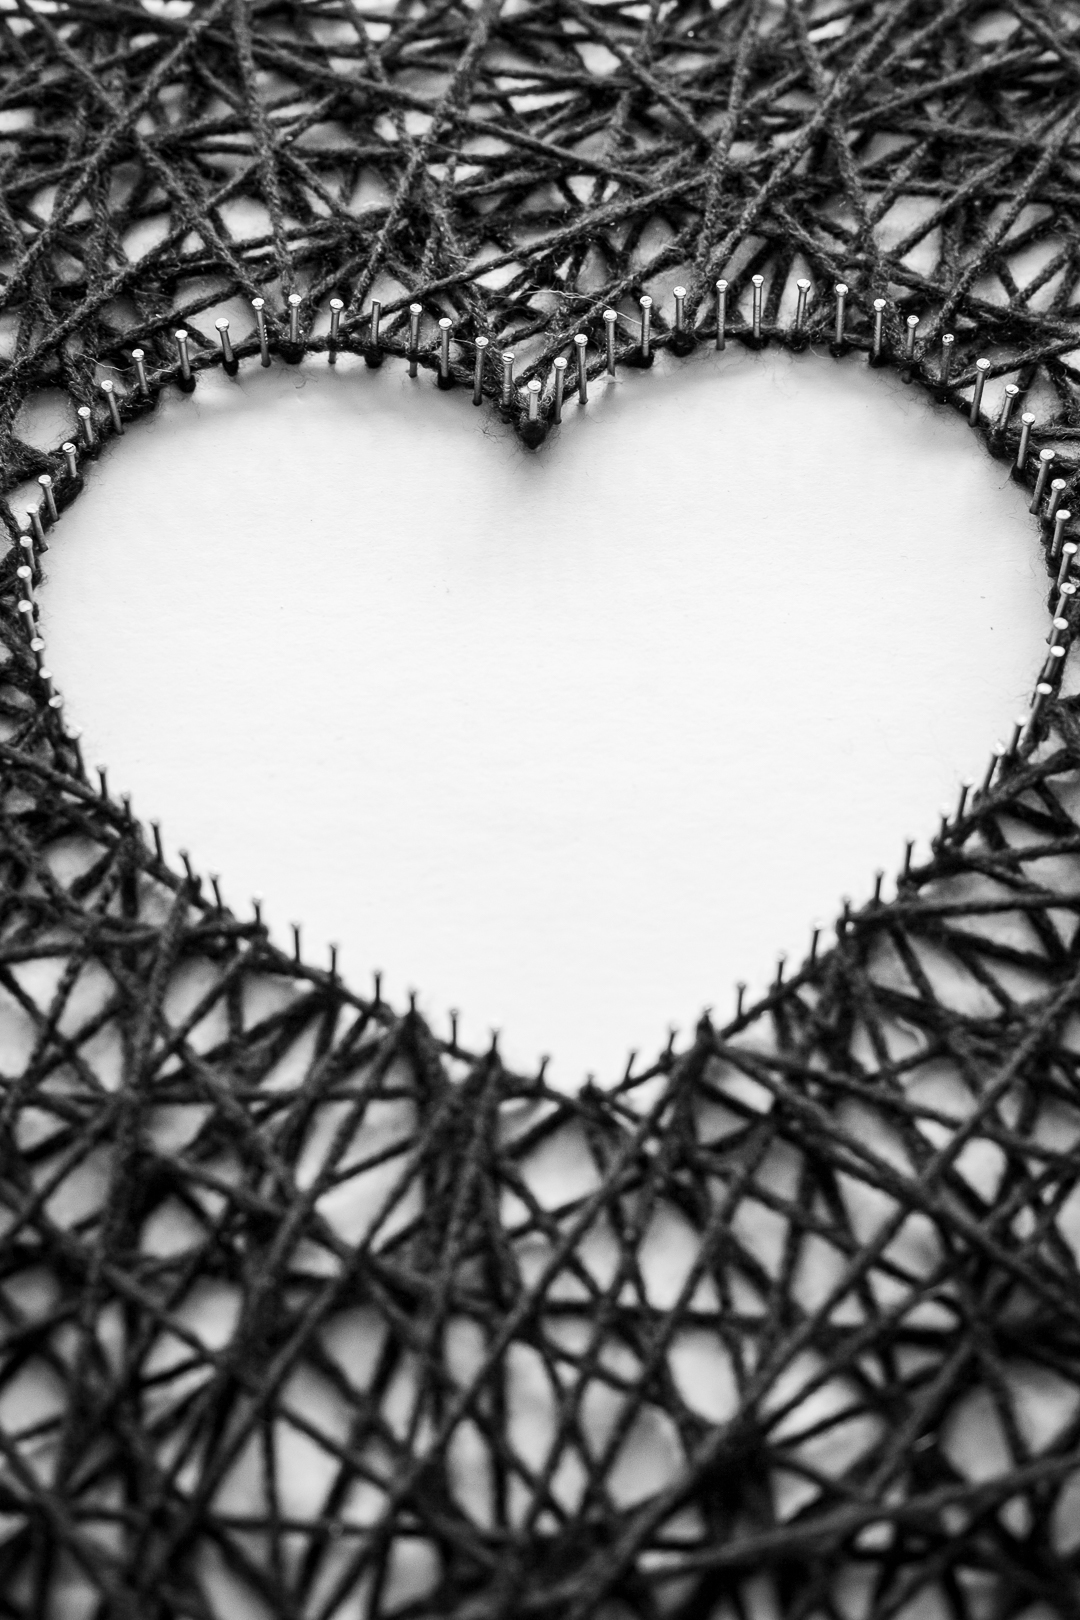 Close up image of string art heart shape